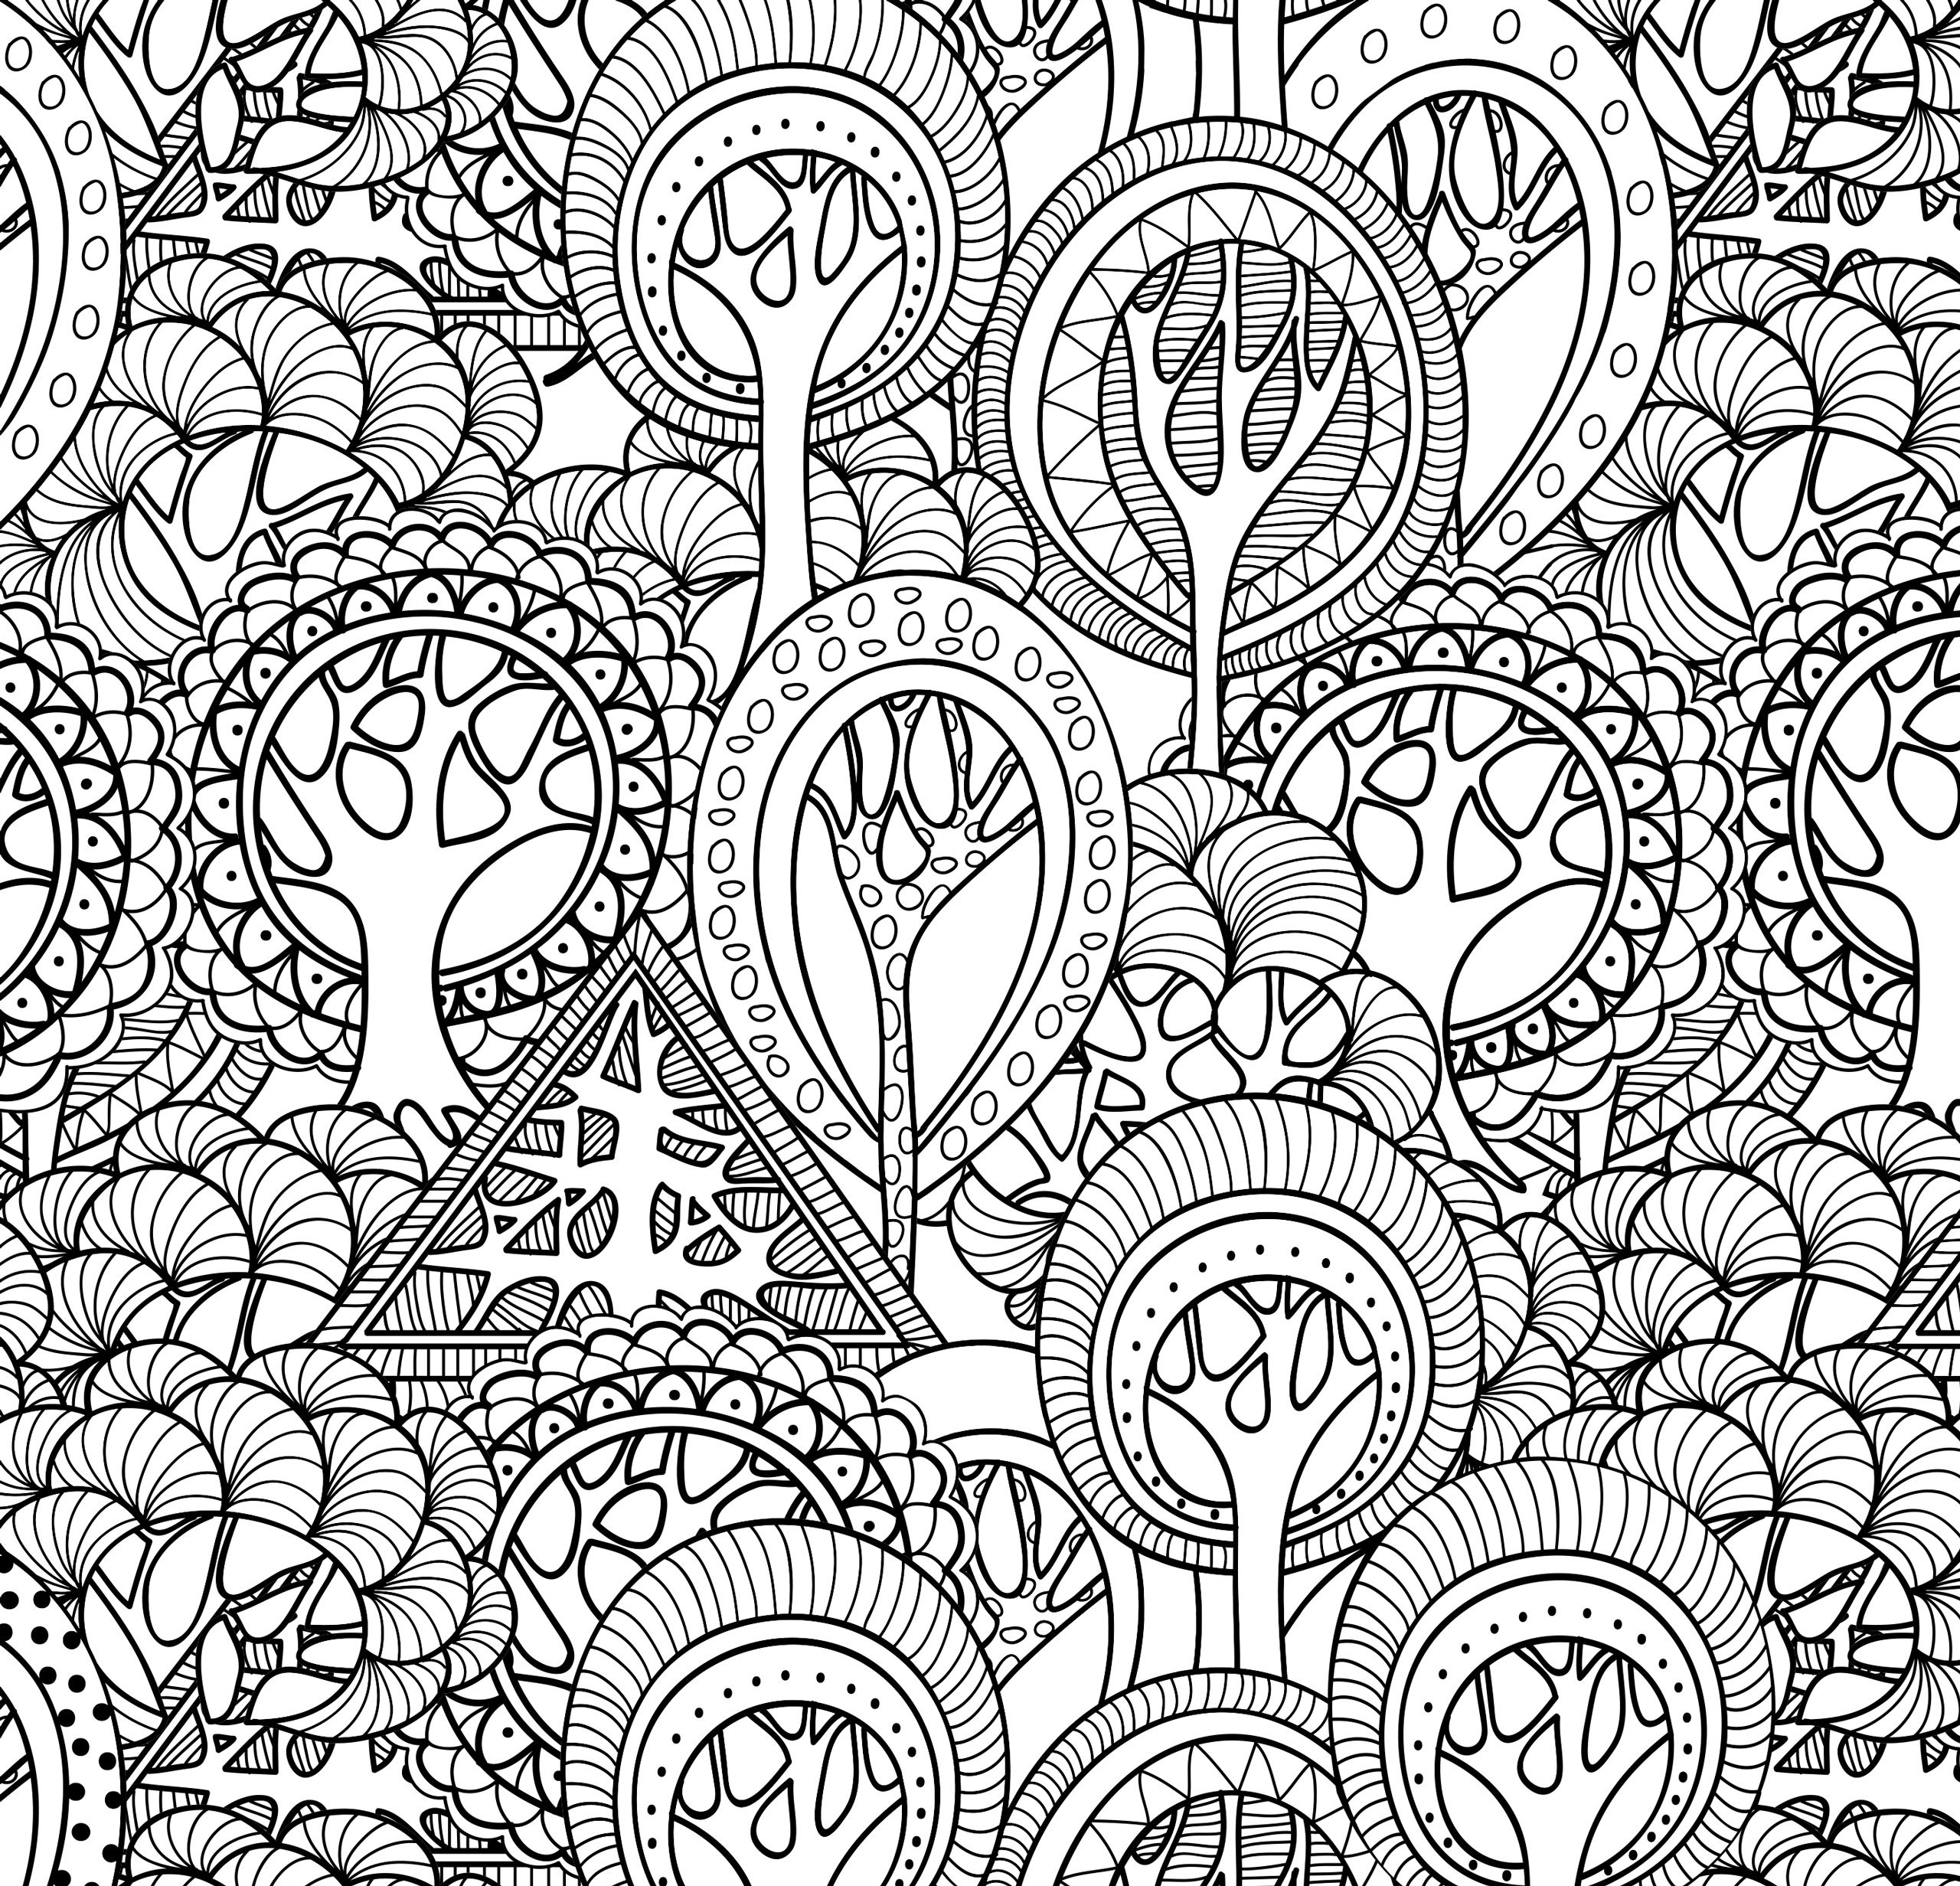 christian coloring pages with scripture Collection-Bible with Coloring Pages Lds Coloring Pages Elegant Fresh S S Media Cache Ak0 Pinimg originals 11-o